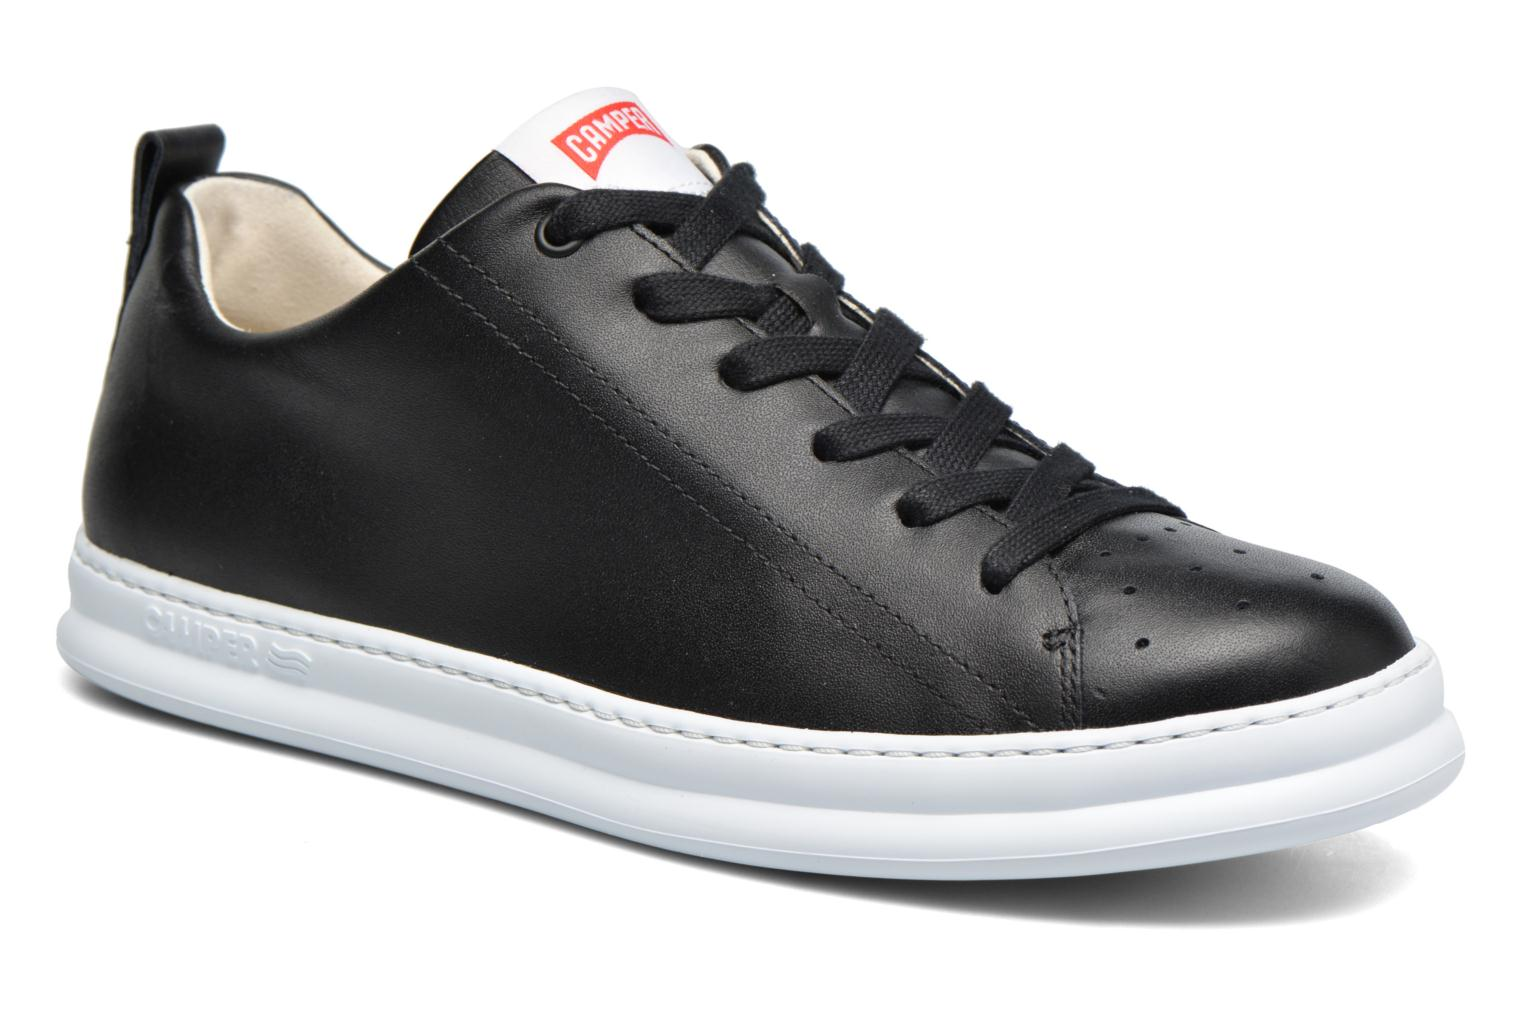 Marques Chaussure homme Camper homme Runner K100226 Softhand Negro/Runnerfour Blanco